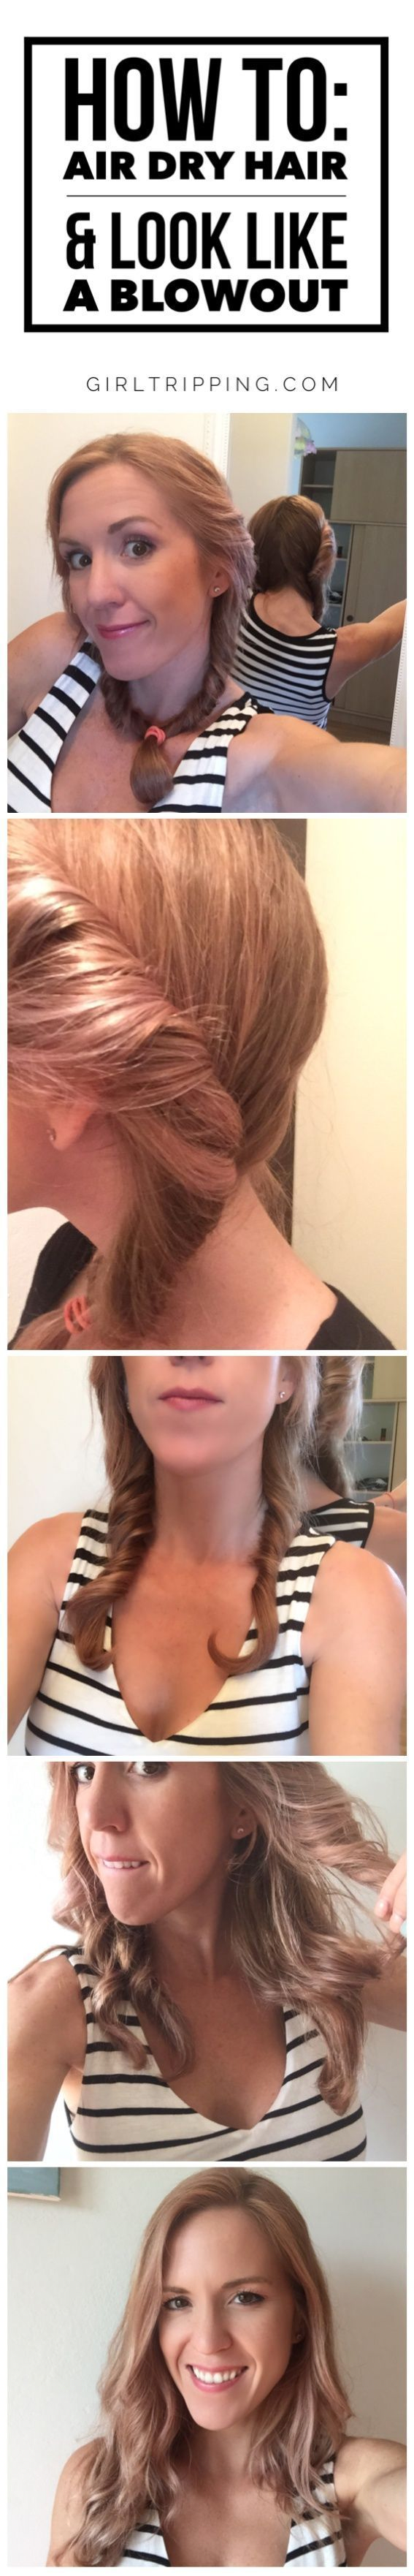 How to AirDry Hair to Look Like a Blowout